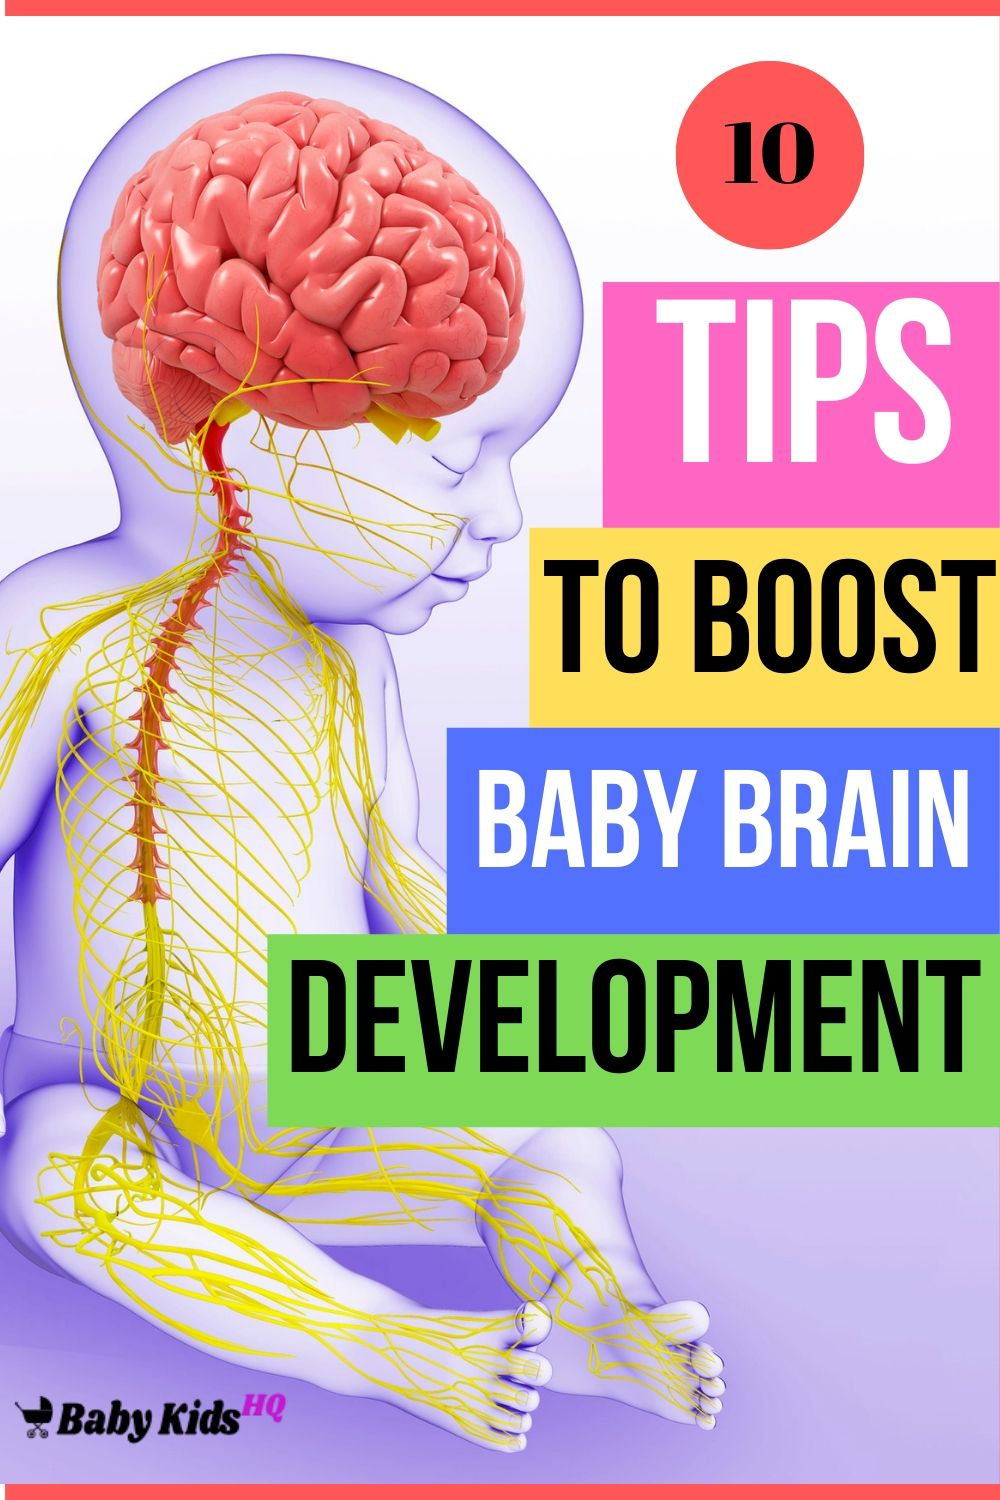 10 Ways To Stimulate Baby Brain! Tips To Boost Baby Brain Development